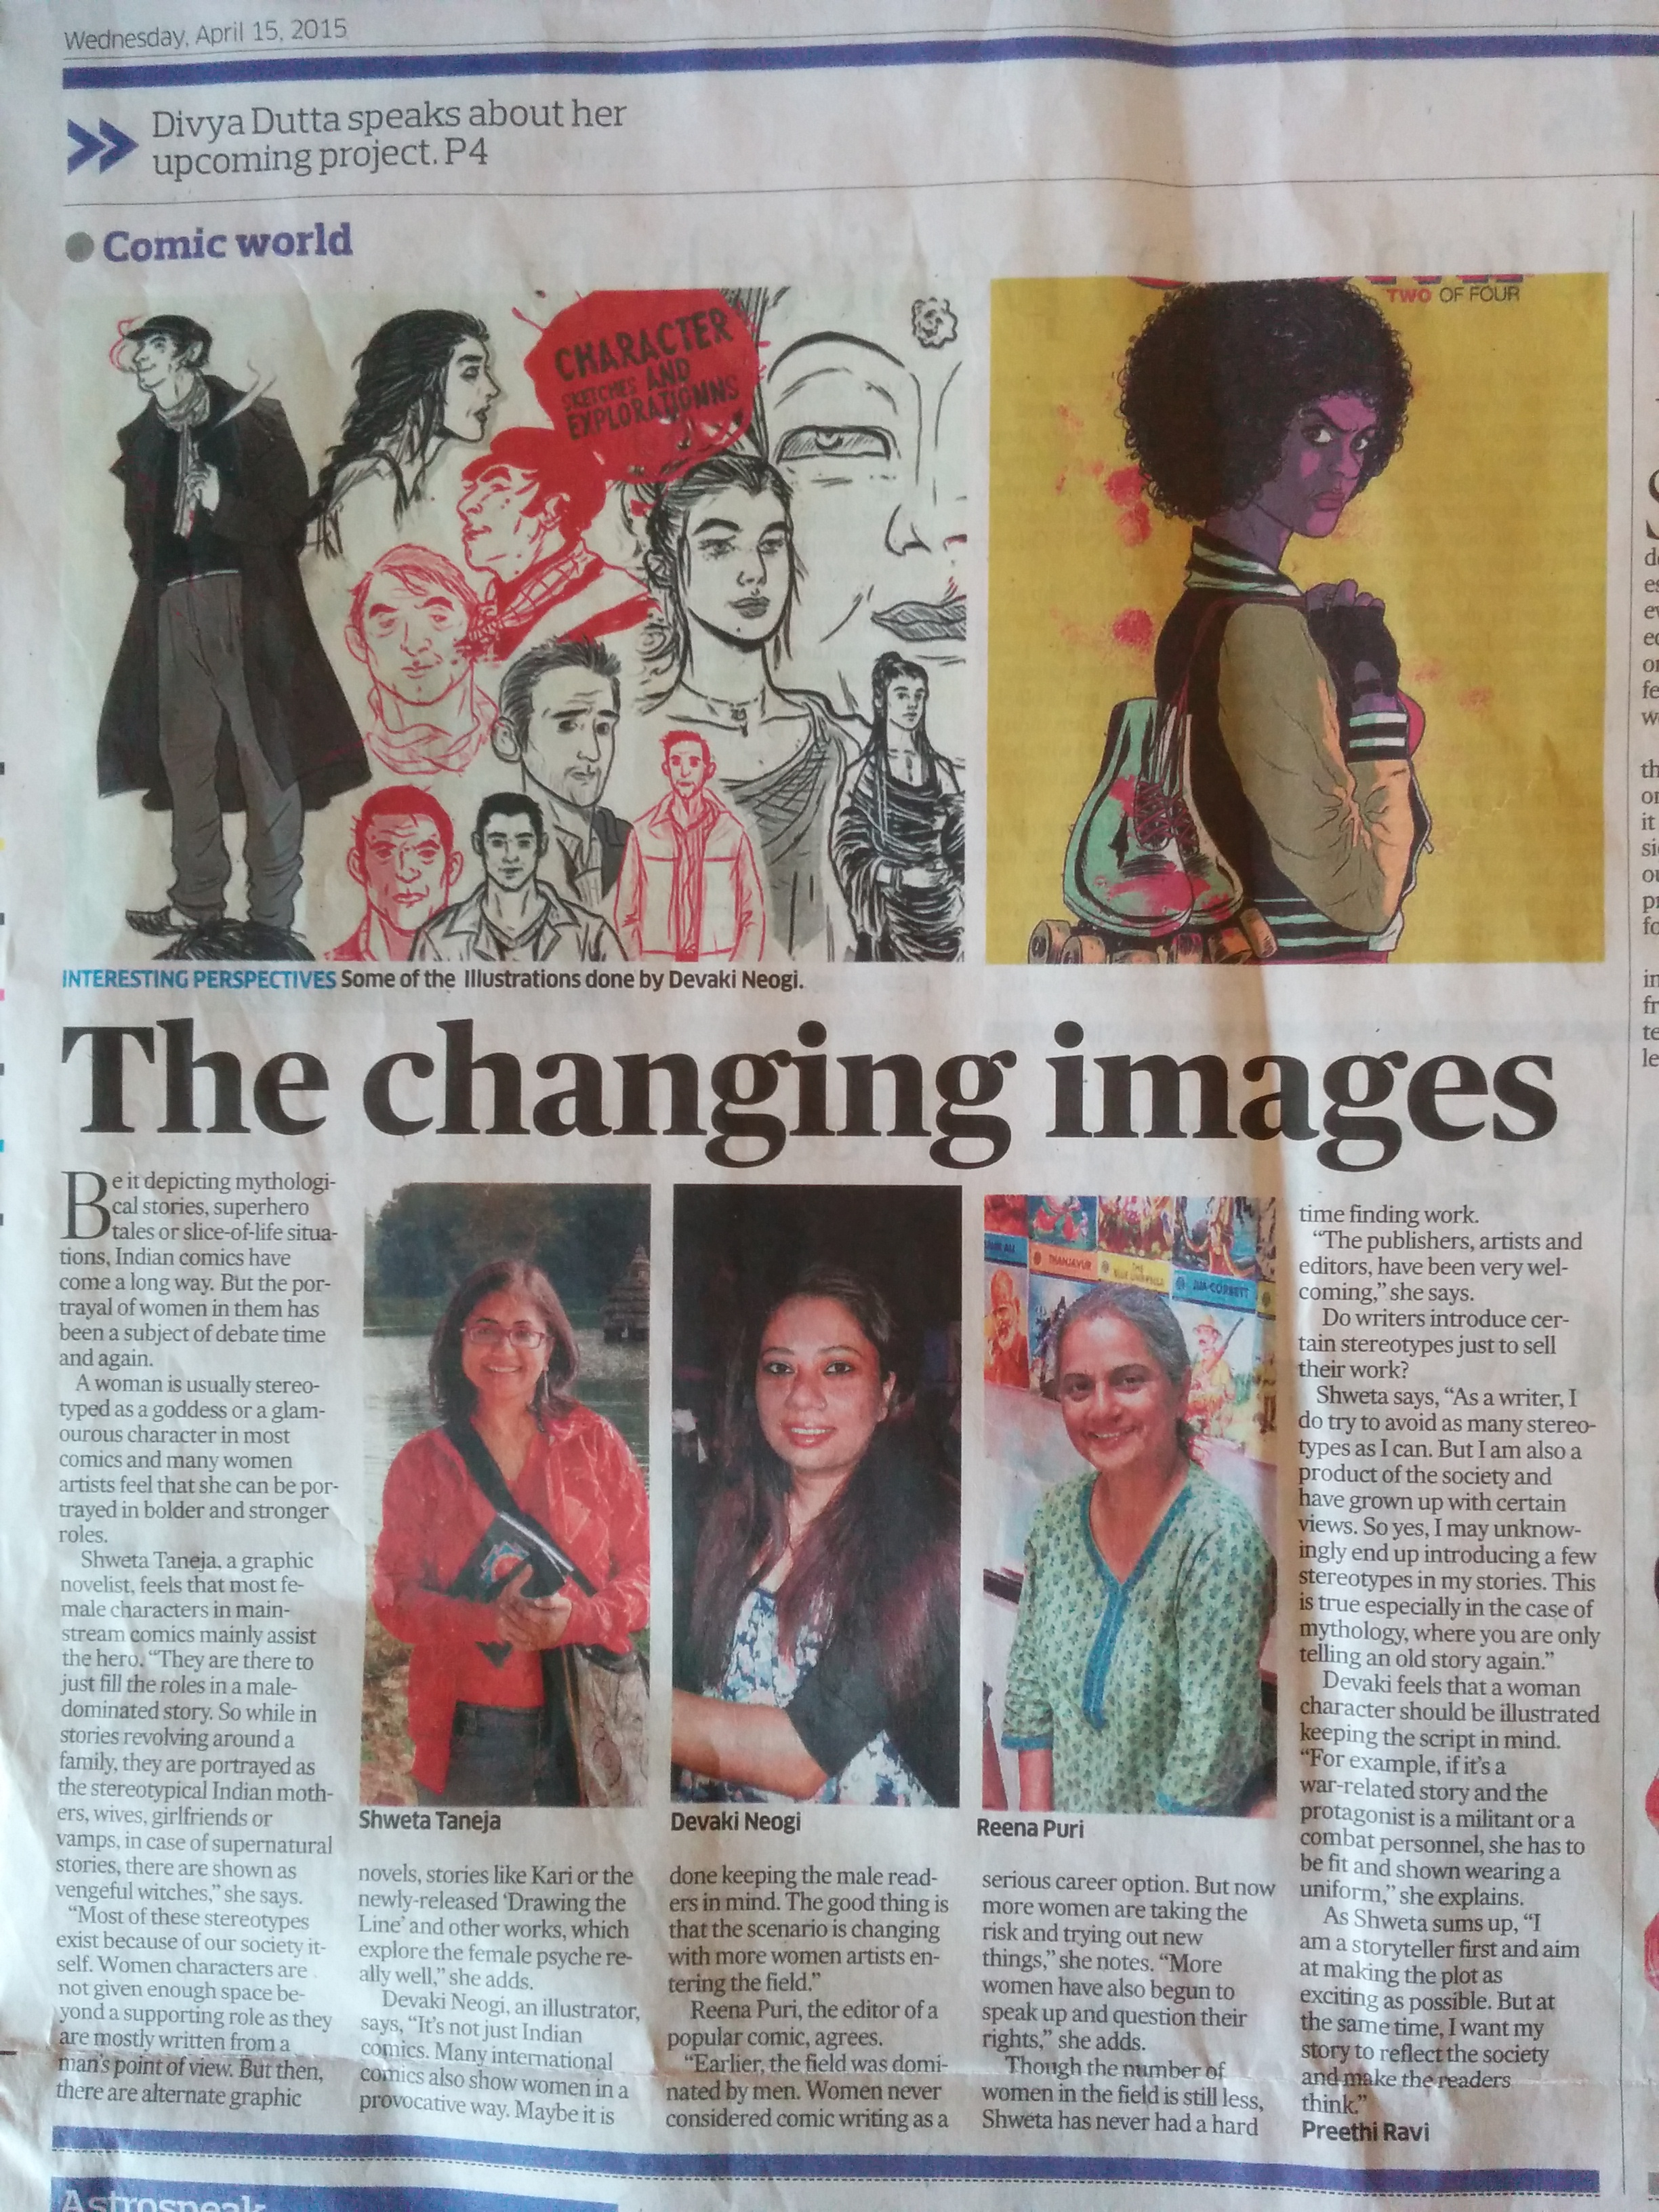 Deccan Herald on women in comics